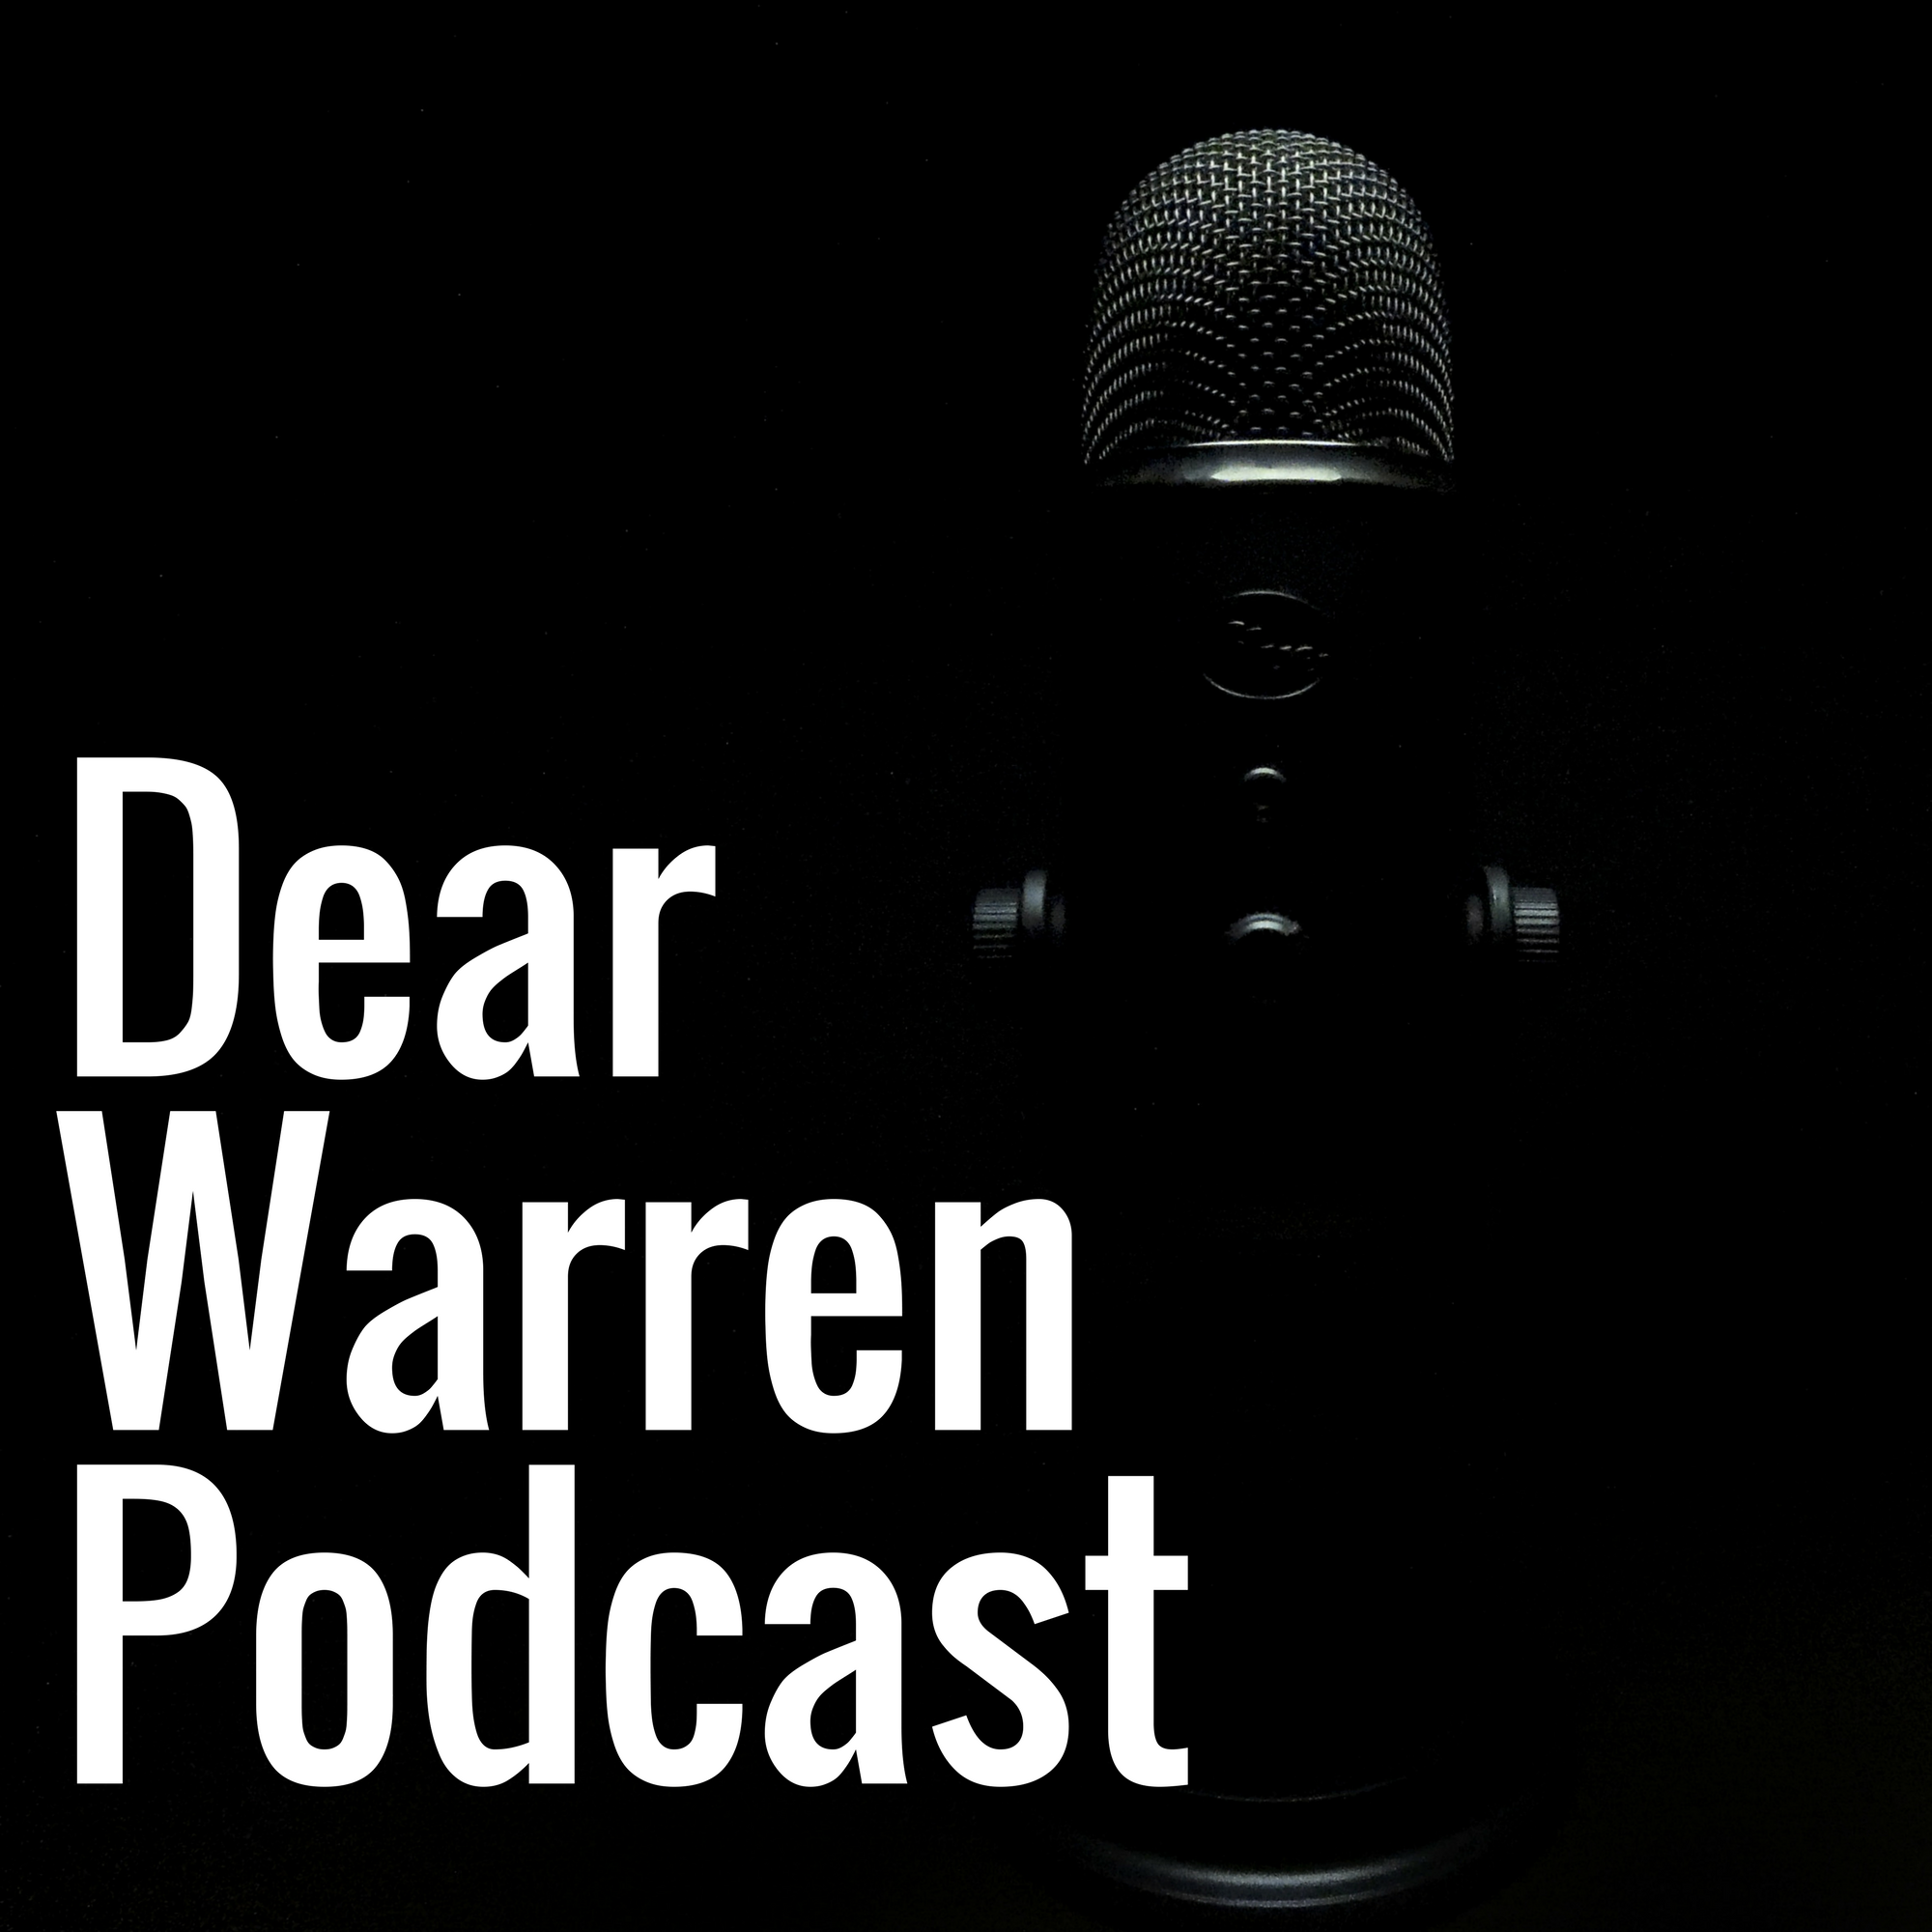 Dear Warren Podcast